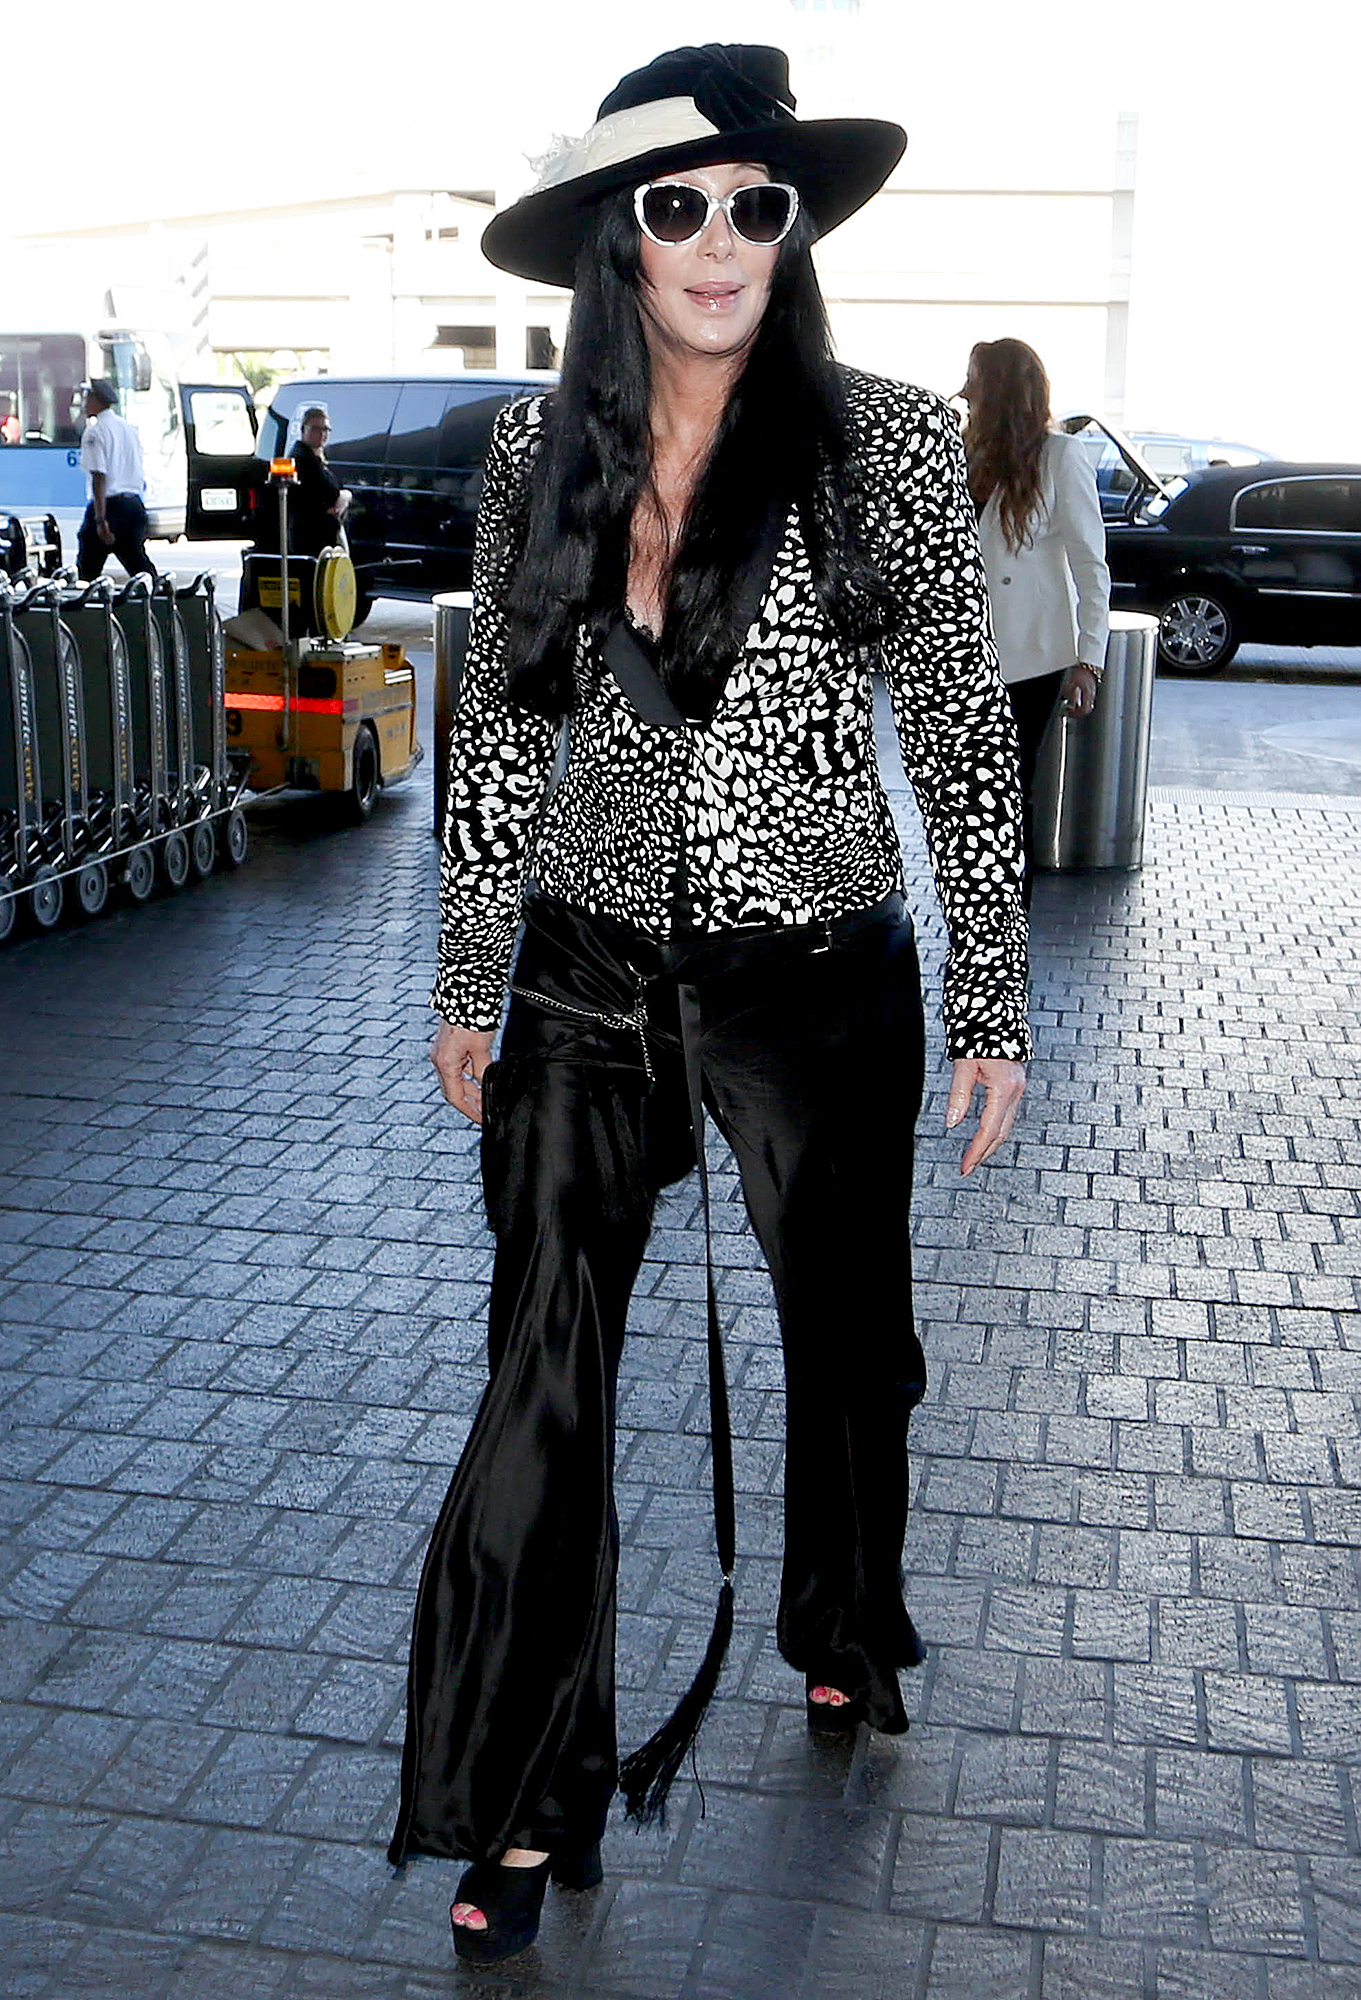 2015-2-cher - Even going to the airport, Cher adheres to her same sense of style looking cool in a hat, sunglasses, chunky heels and flared pants with a zipper pocket on one leg.